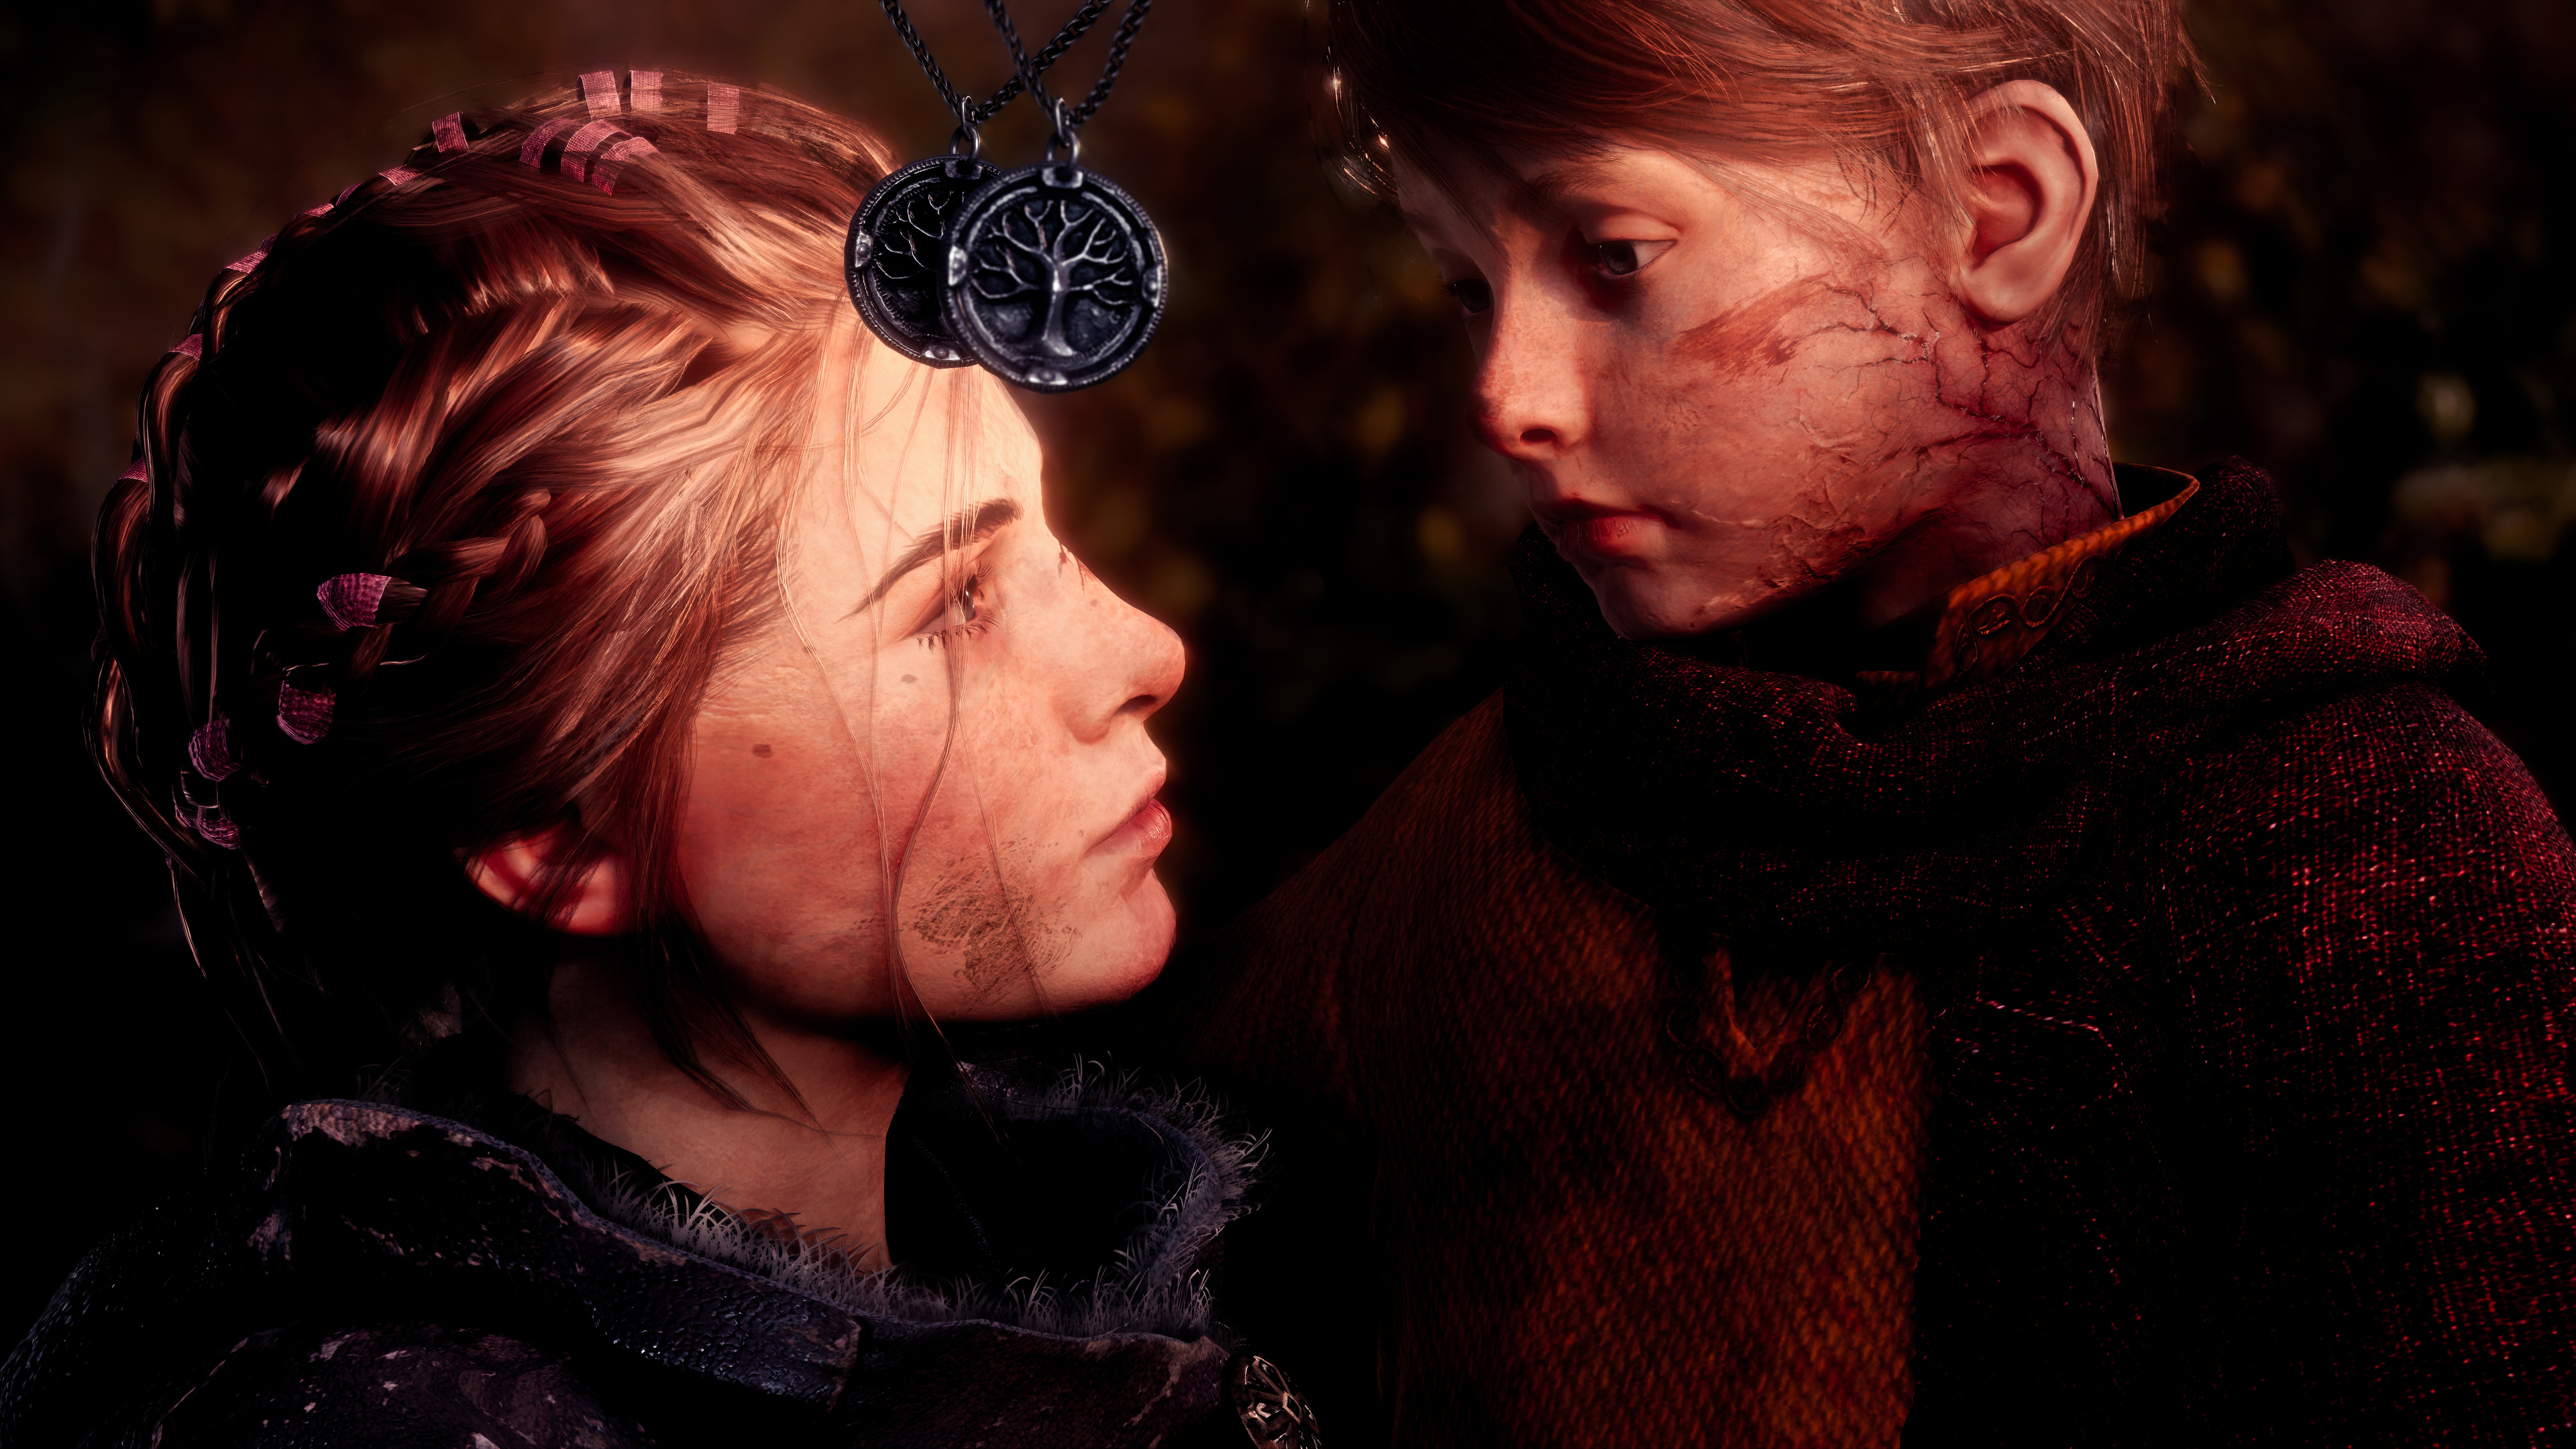 a plague tale innocence till death do us 1568056801 - A Plague Tale Innocence Till Death Do Us - hd-wallpapers, games wallpapers, a plague tale innocence wallpapers, 8k wallpapers, 5k wallpapers, 4k-wallpapers, 2019 games wallpapers, 10k wallpapers